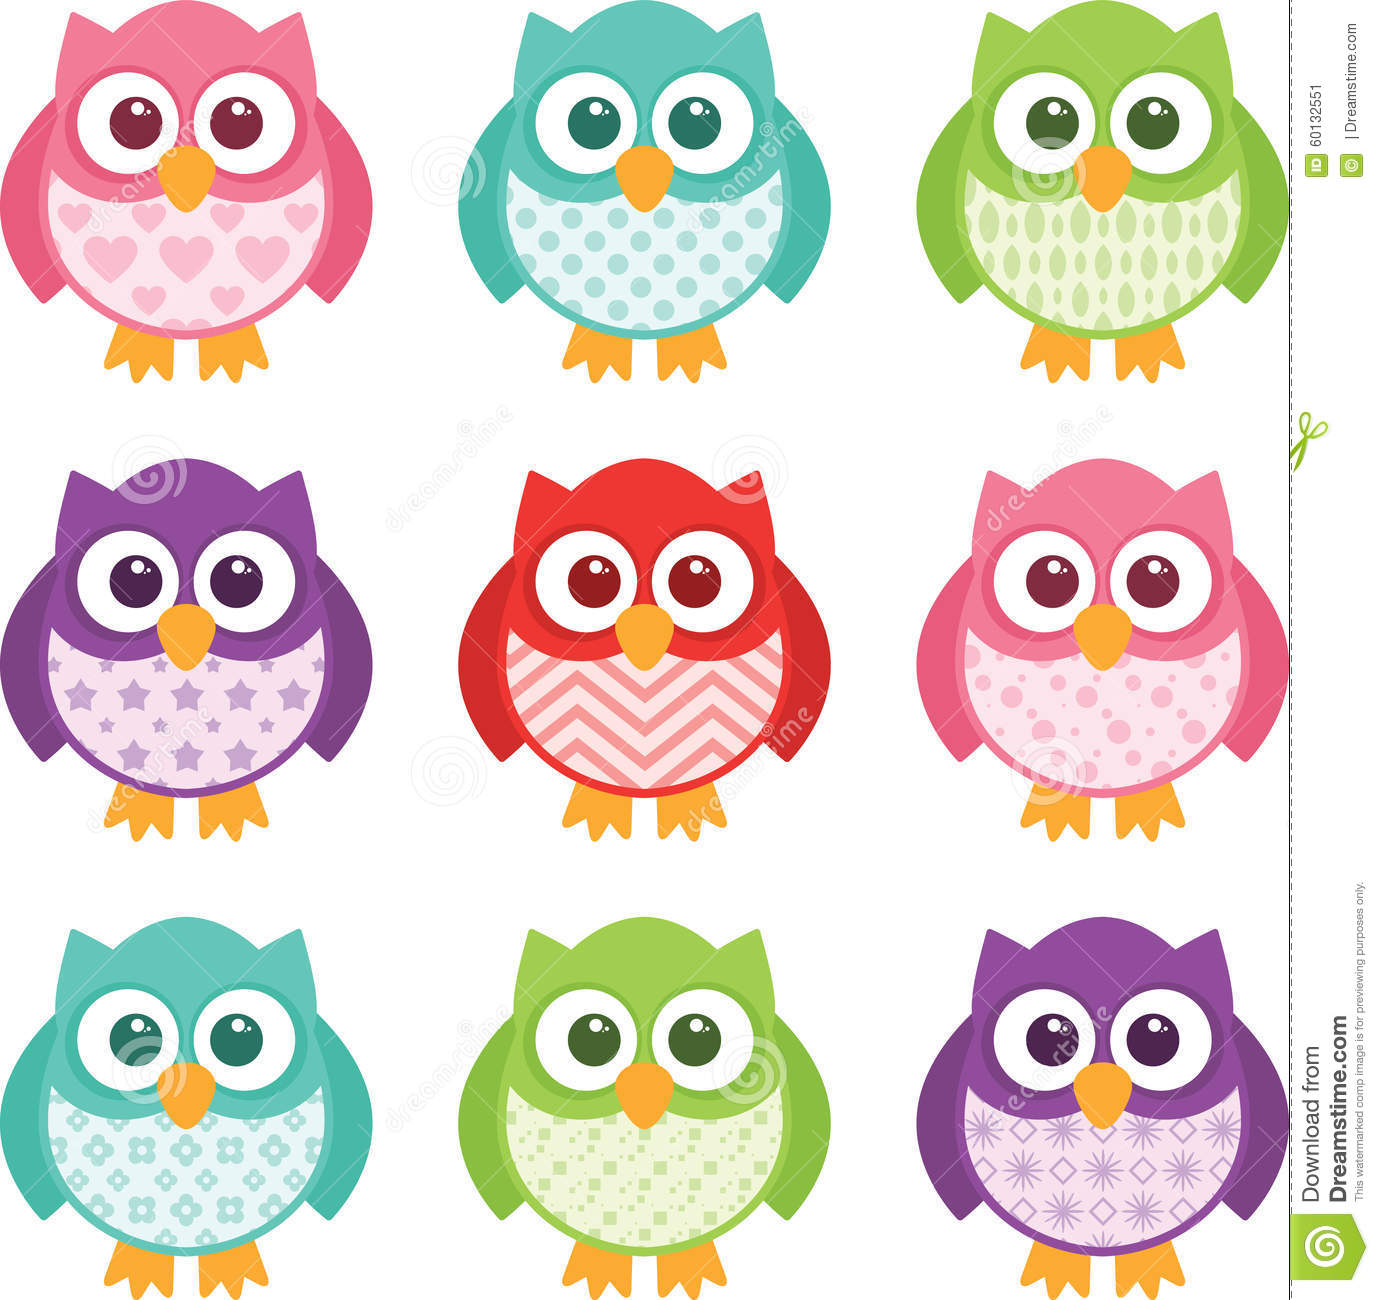 Free House Plans For Students Cute Simple Cartoon Patterned Owls Stock Vector